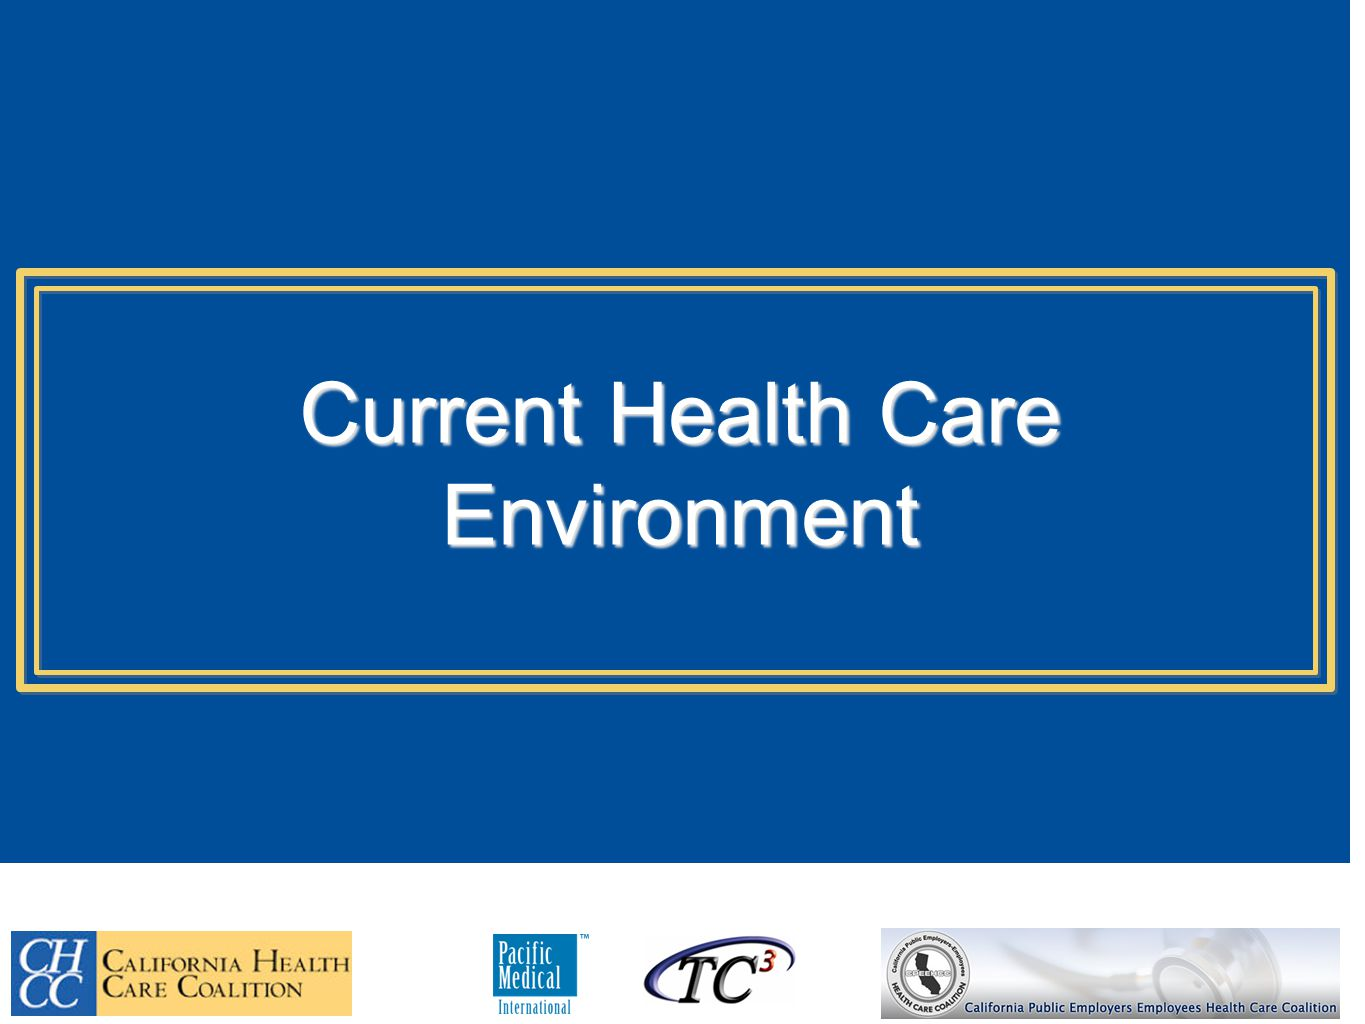 Current Health Care Environment